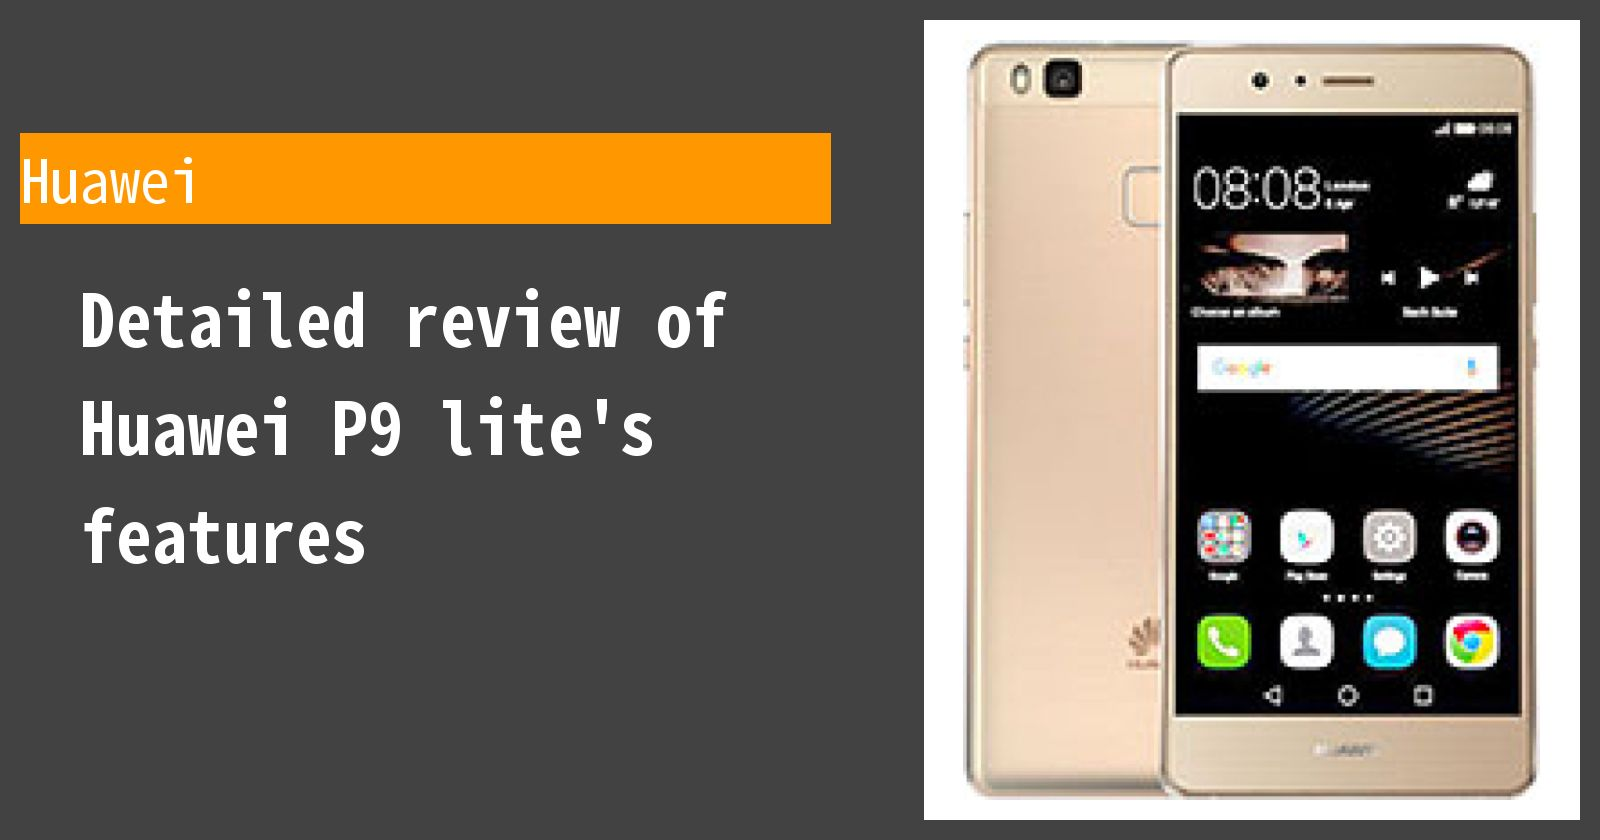 Detailed review of Huawei P9 lite's features